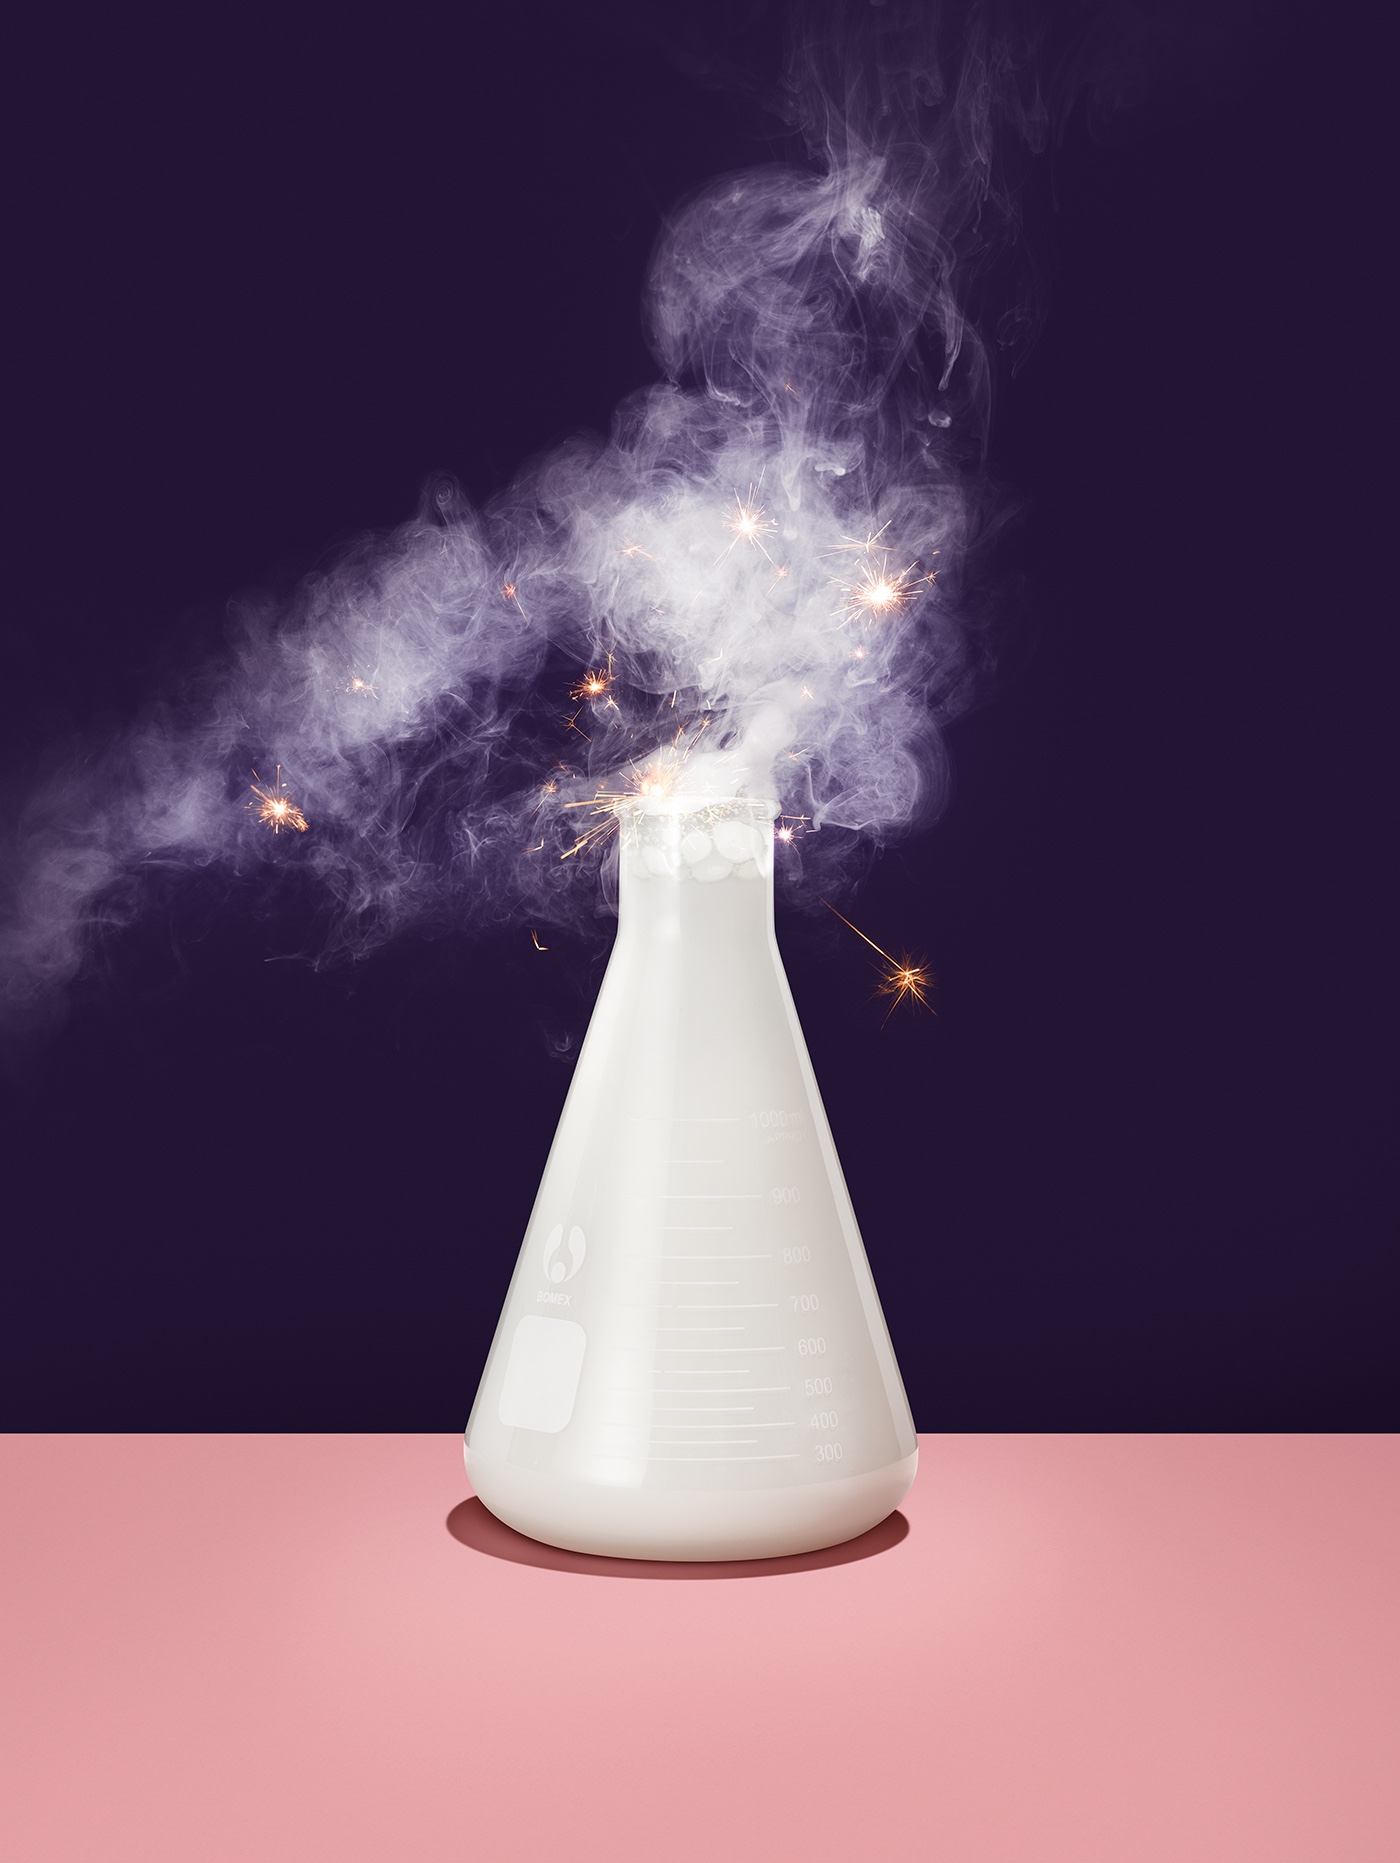 https://tickertapecdn.tdameritrade.com/assets/images/pages/md/A beaker with smoke puffing out and sparks forming